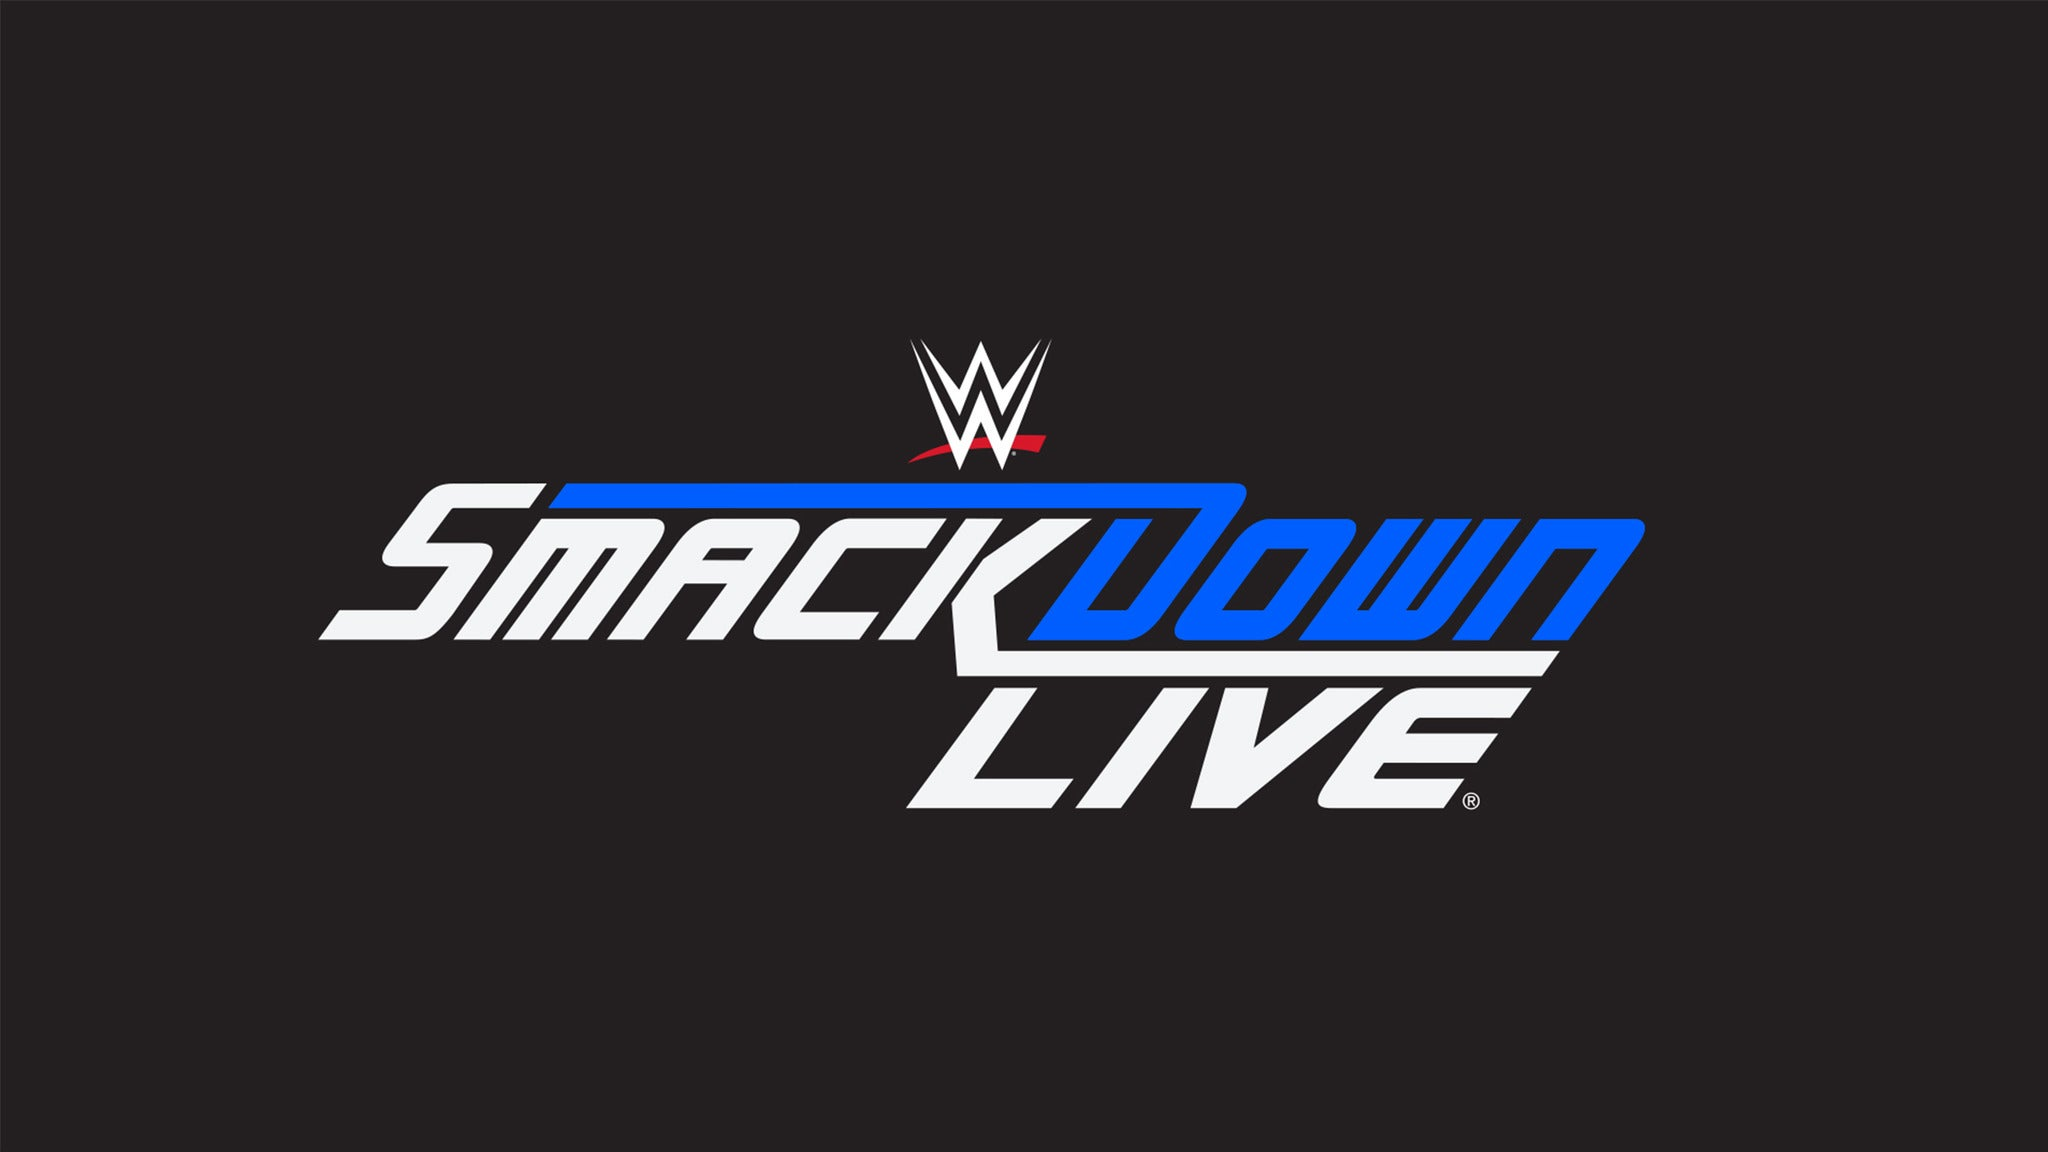 WWE Smackdown Live at Webster Bank Arena